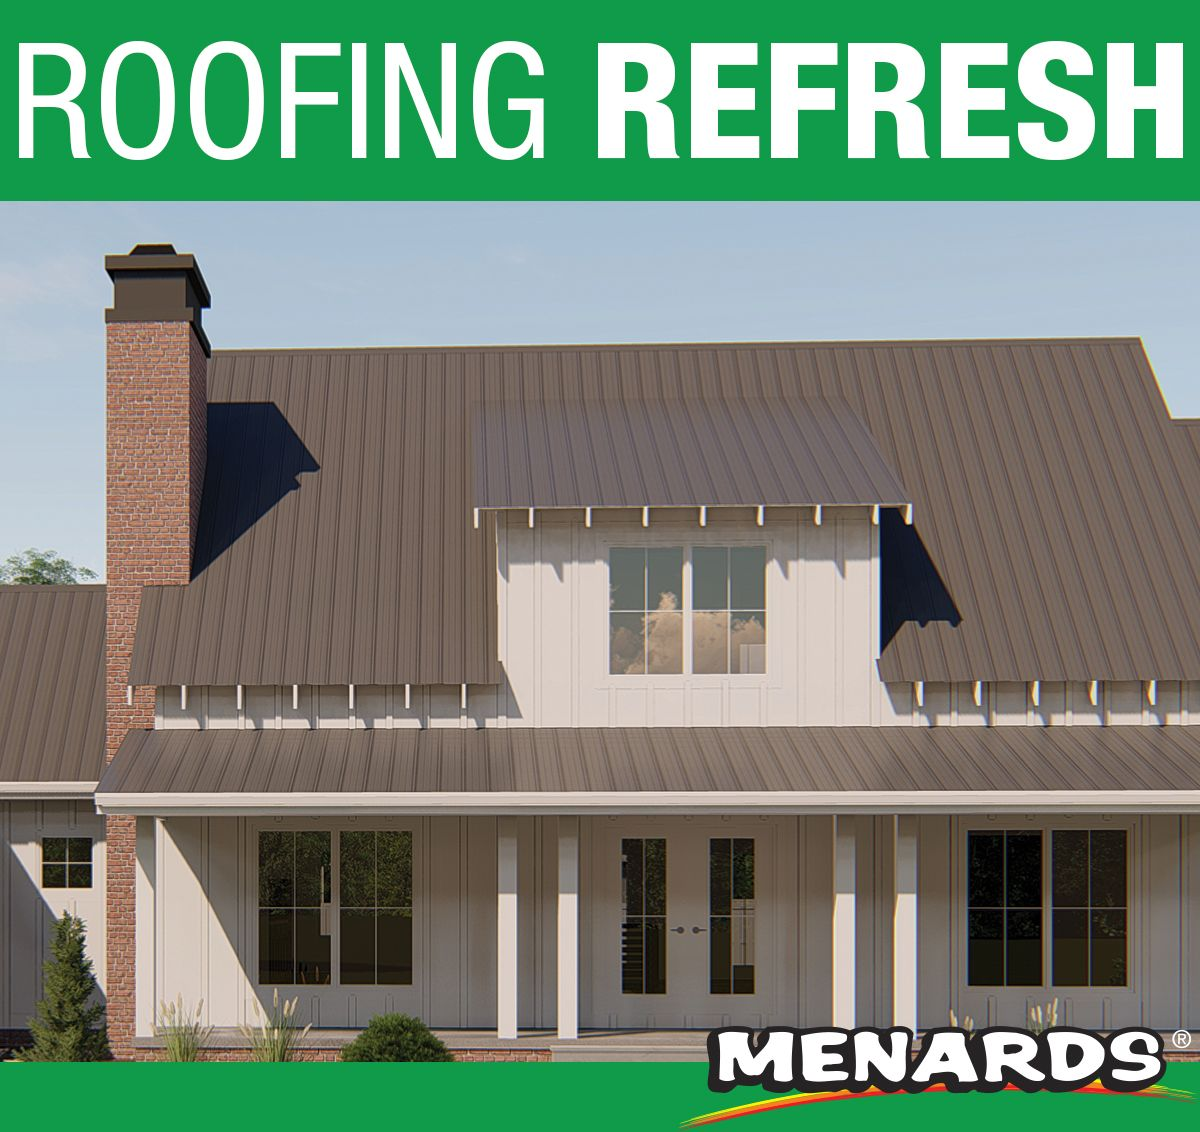 Update Your Roof With Pro Rib Steel Roofing Pro Rib Is Increasing Its Usage In The Residential Roofing And Light C Residential Roofing Roofing Steel Roofing